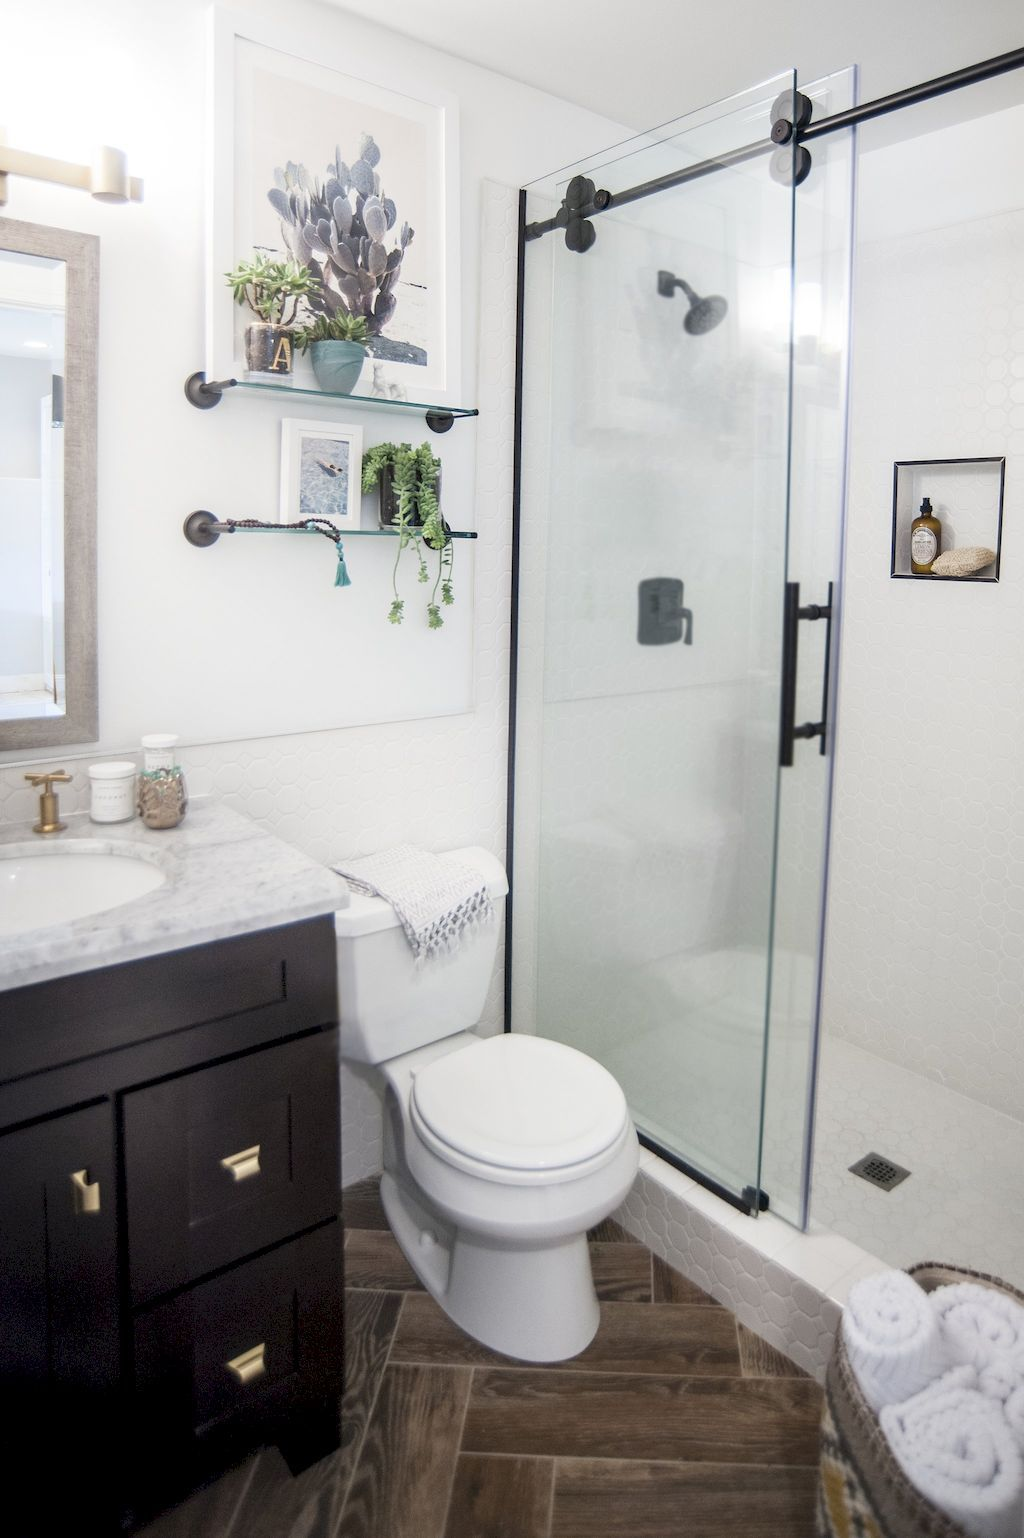 Superior Cool Small Master Bathroom Remodel Ideas (31)